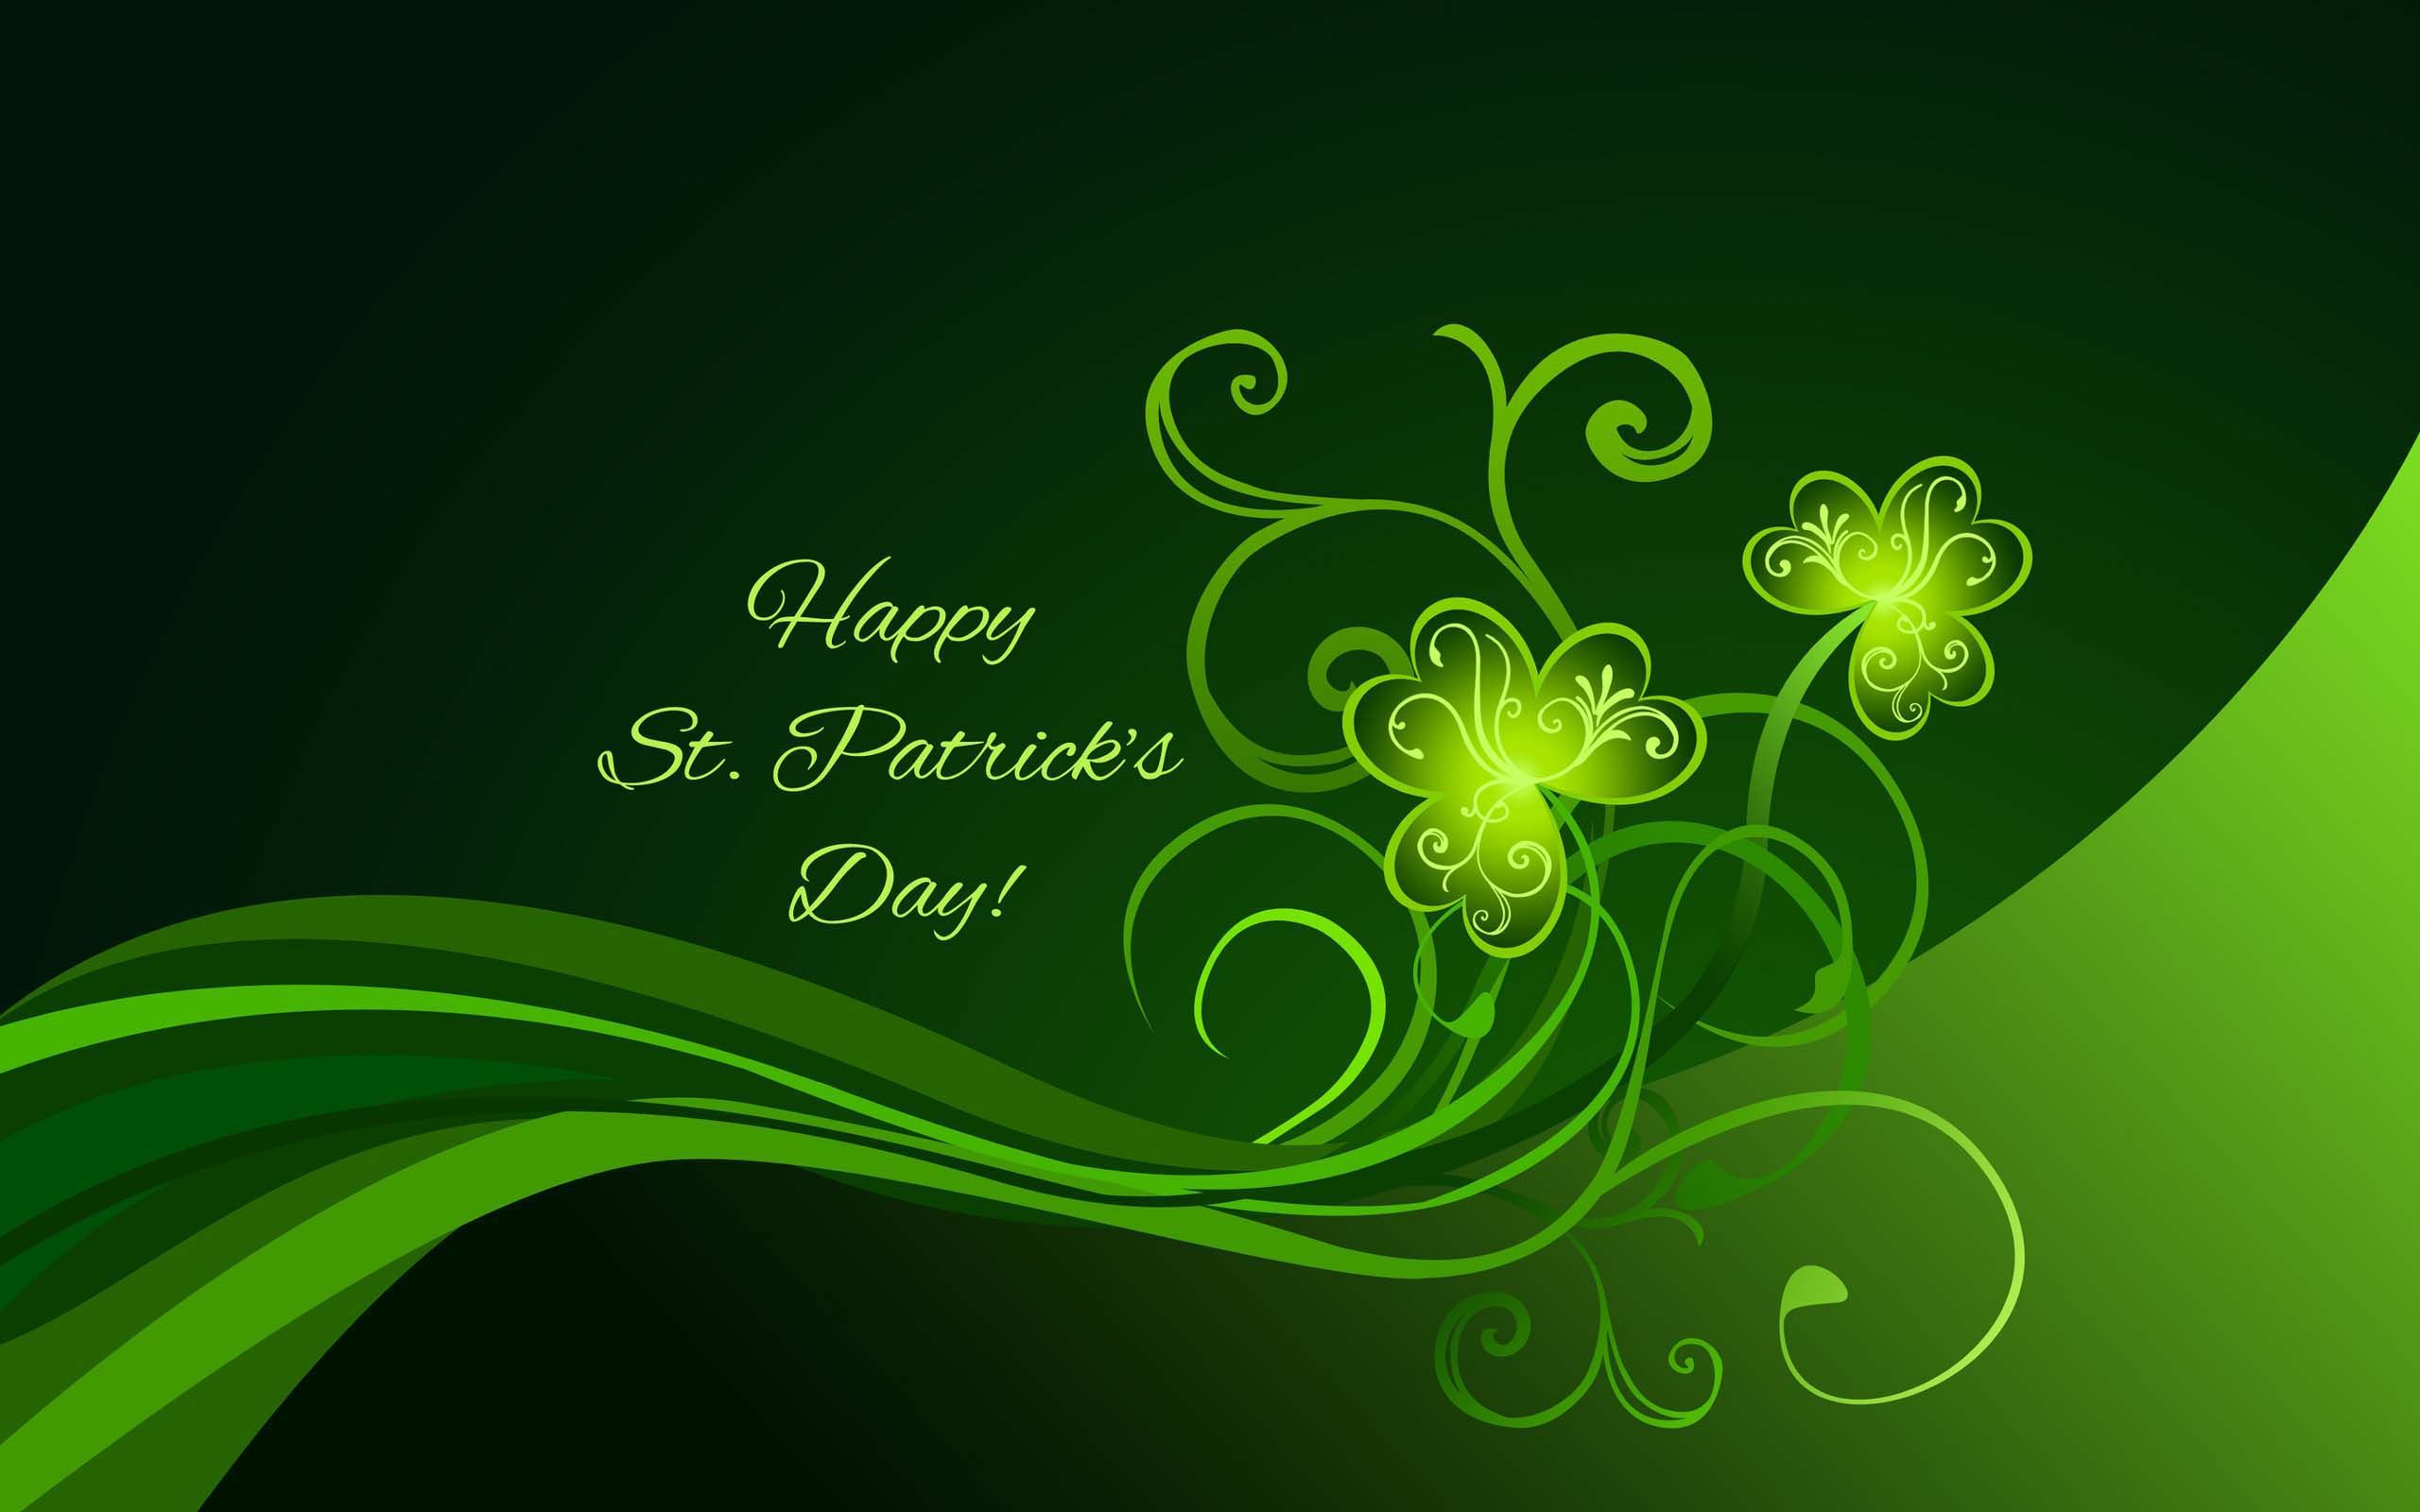 St Patricks Day HD Wallpaper Free